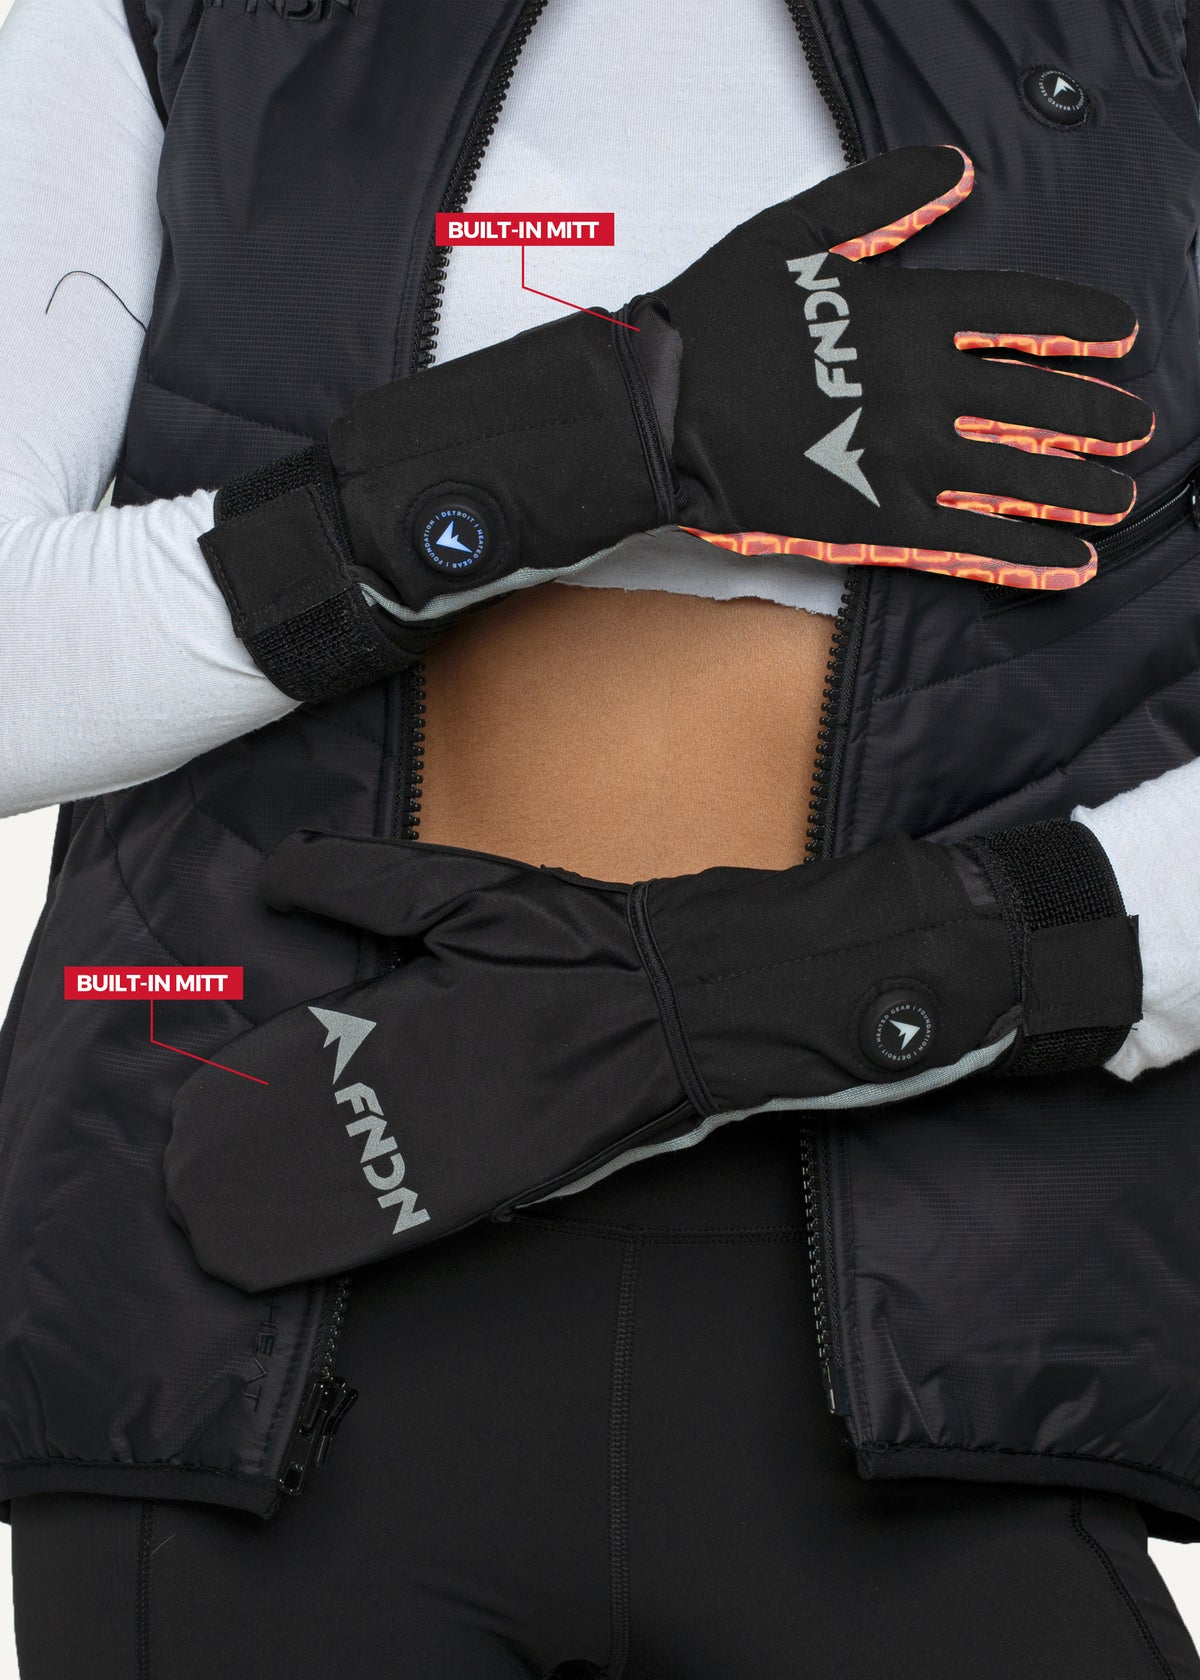 FNDN 3.7V Heated Liner Glove with Mitt